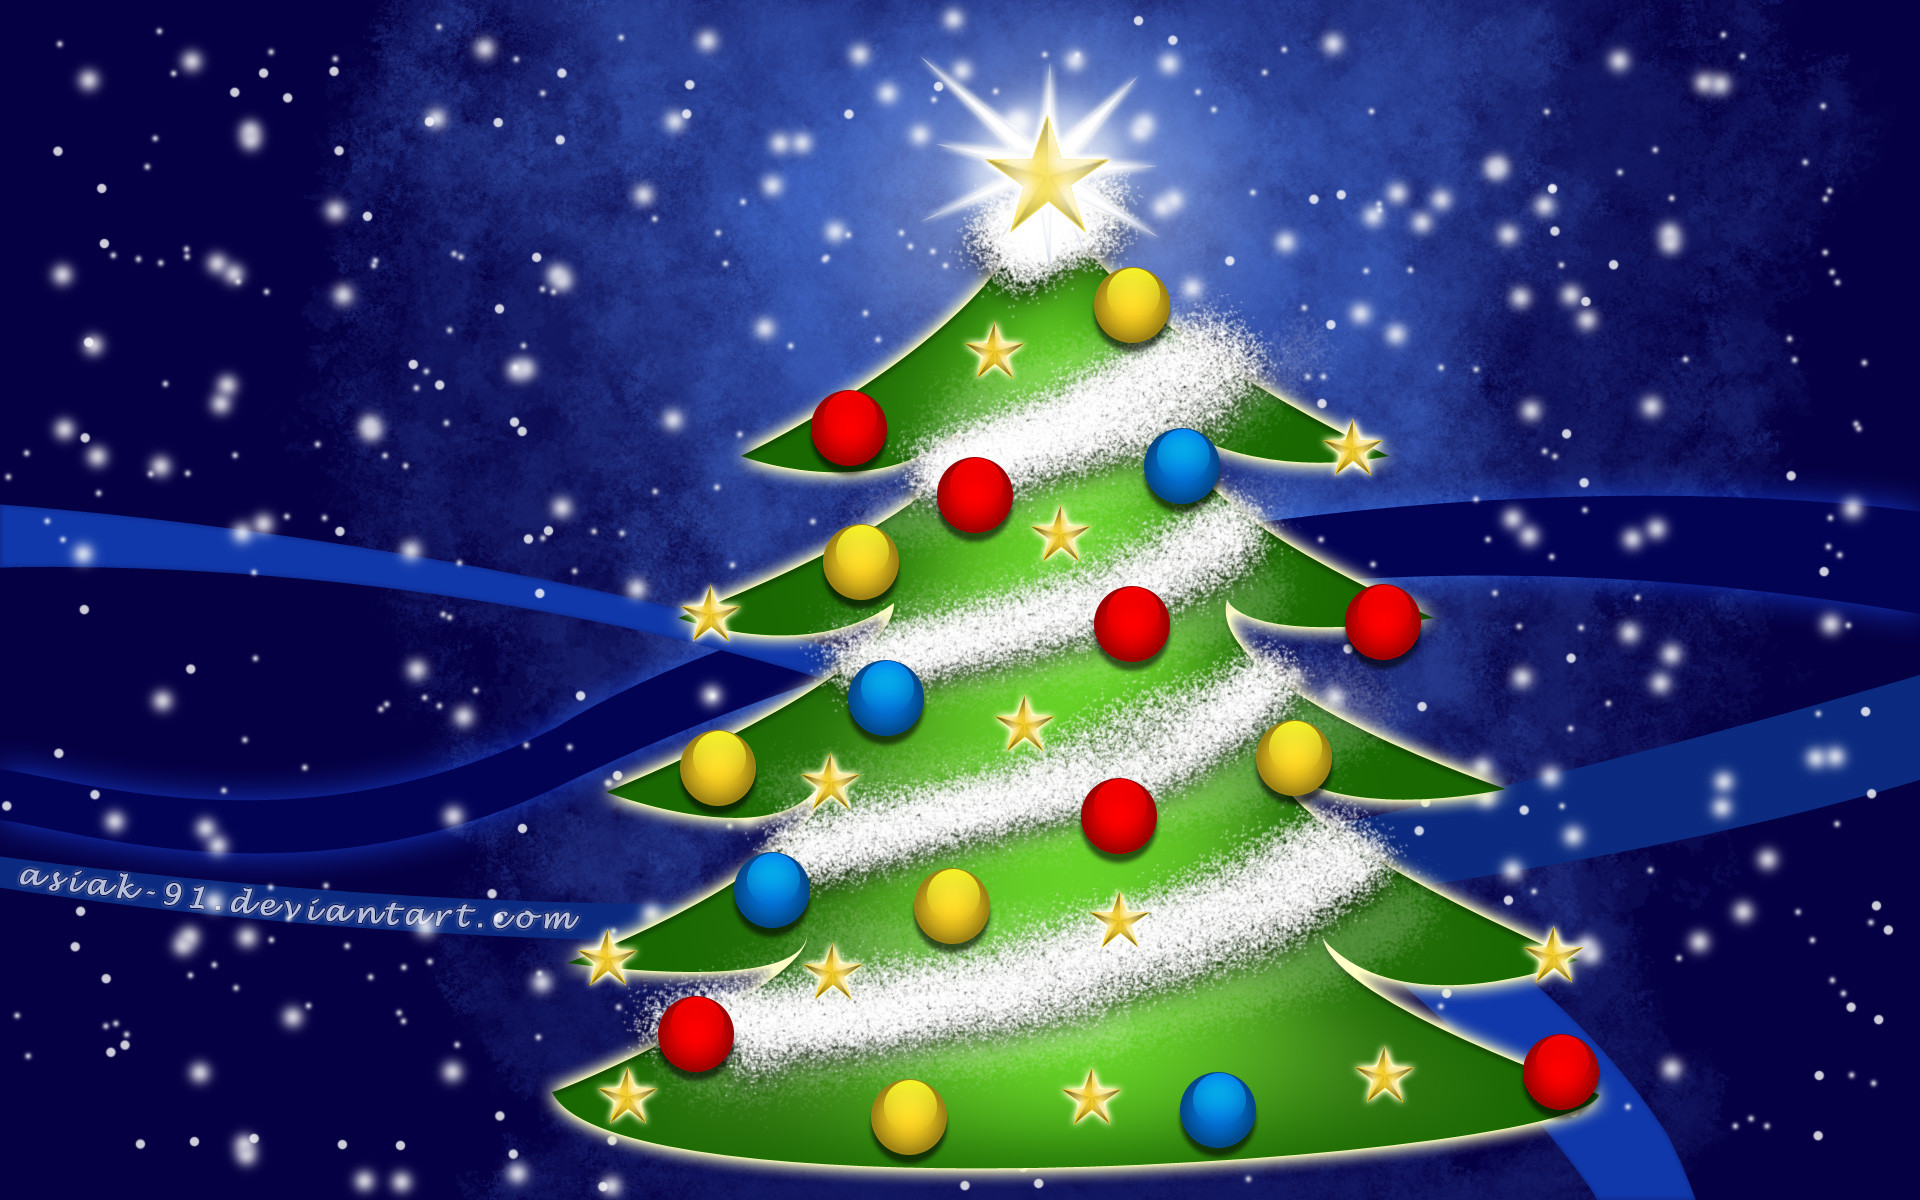 christmas, cool, wallpaper, image, widescreen, tree, photo, wallpapers